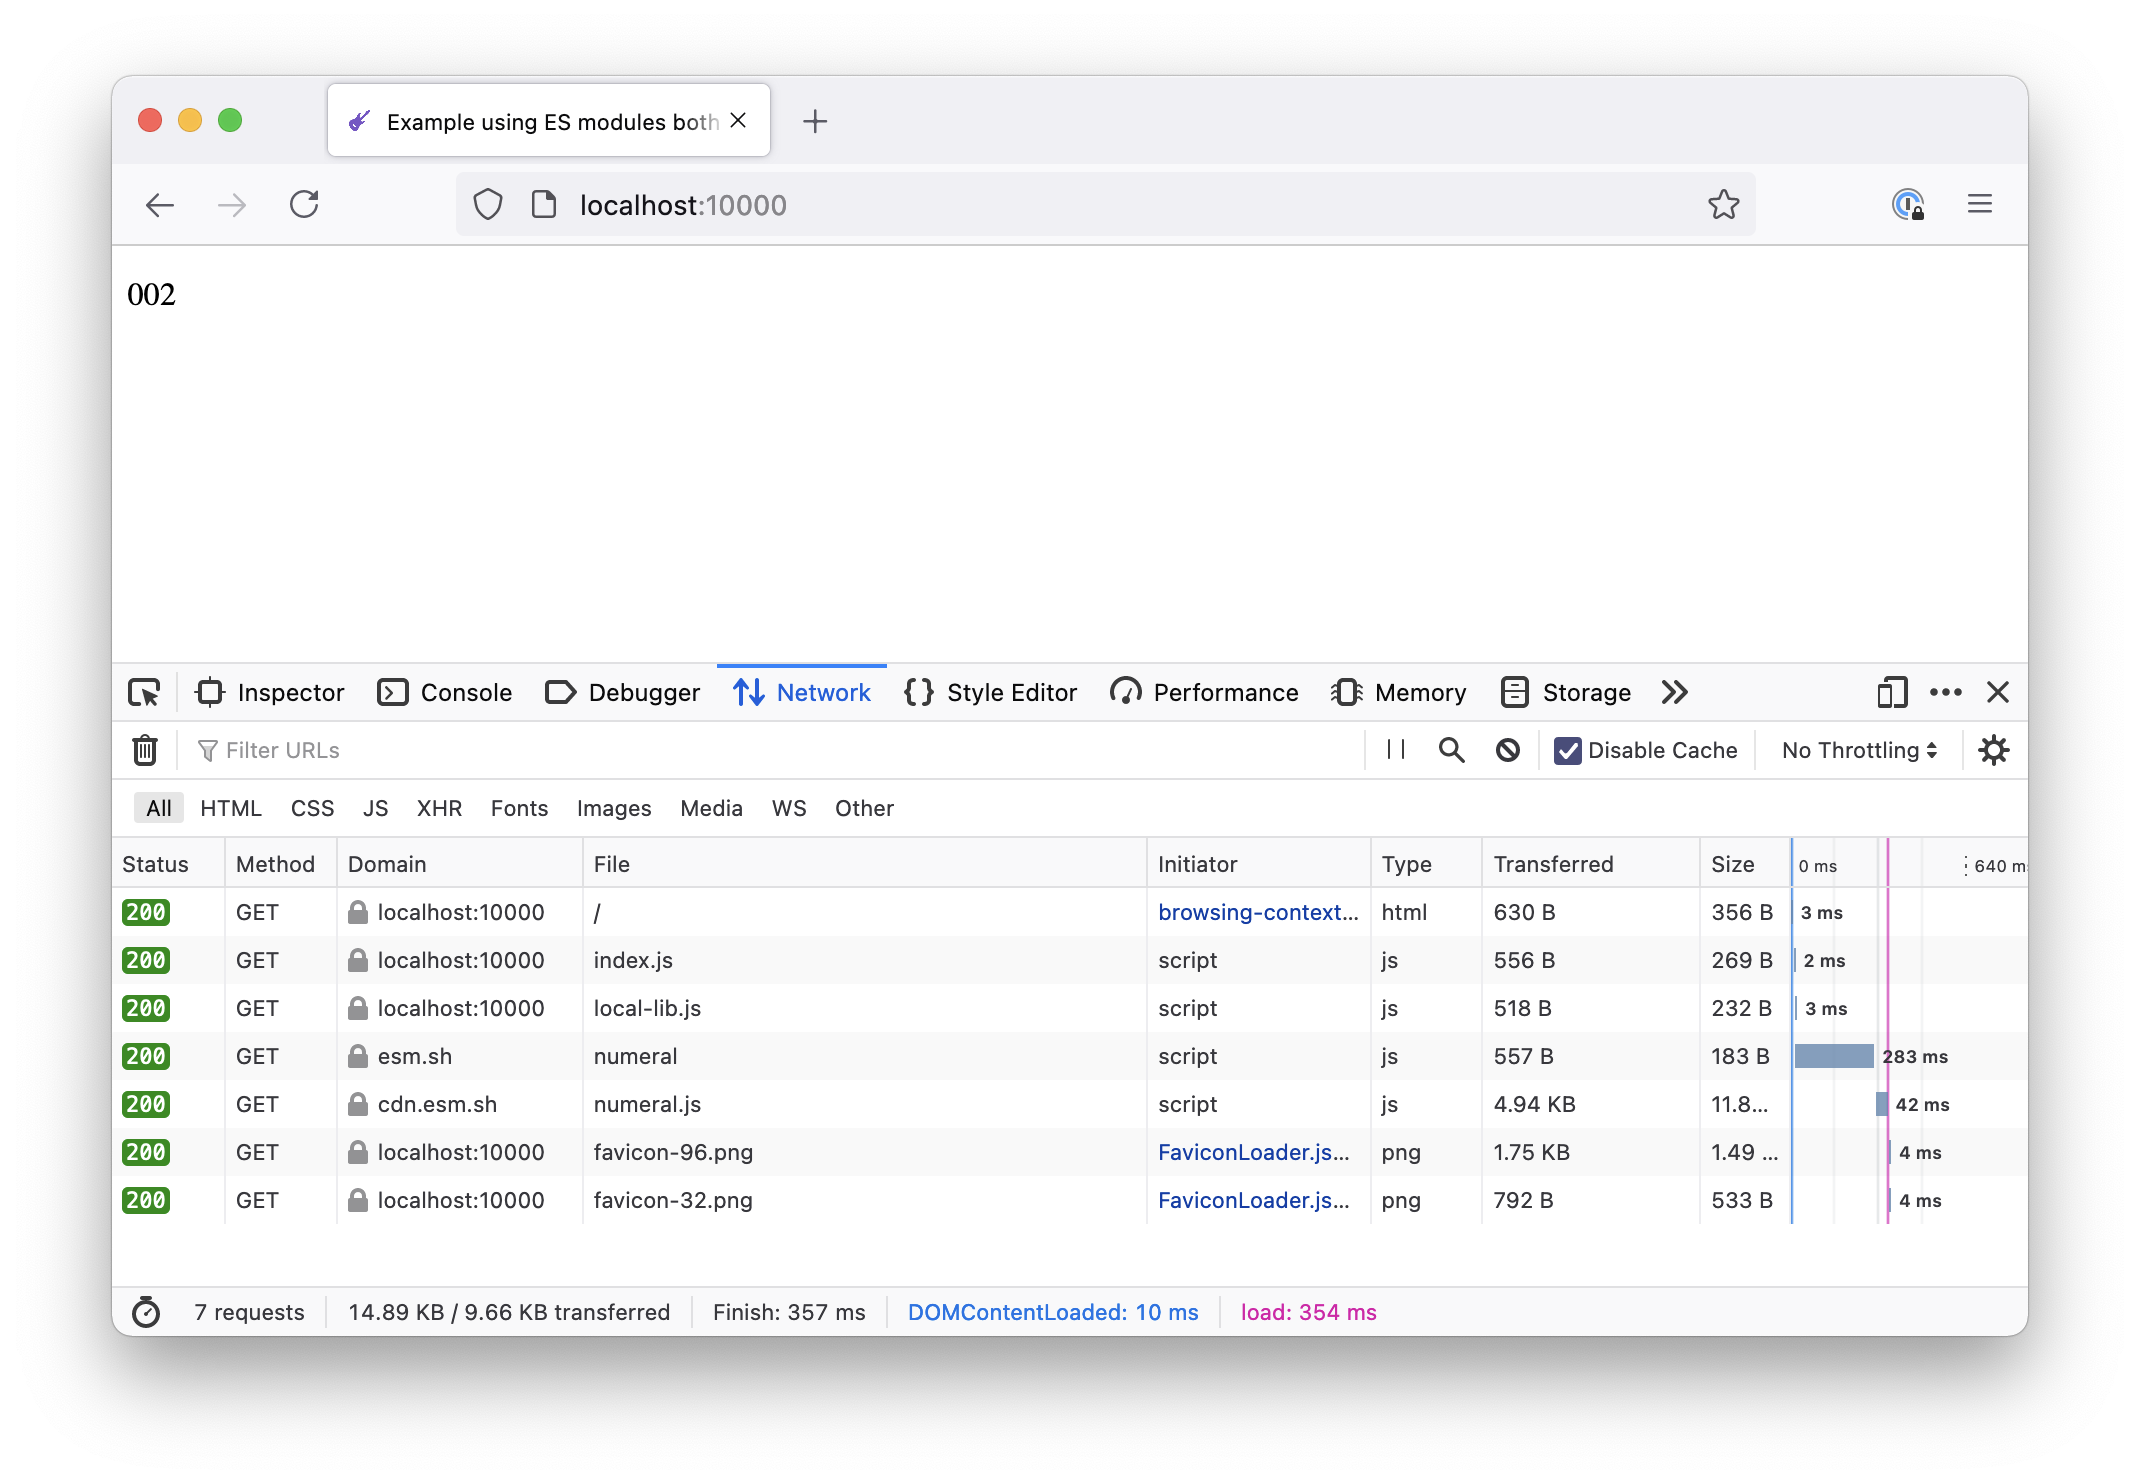 Screenshot of the Network panel in Firefox showing all the different resources loaded from various places